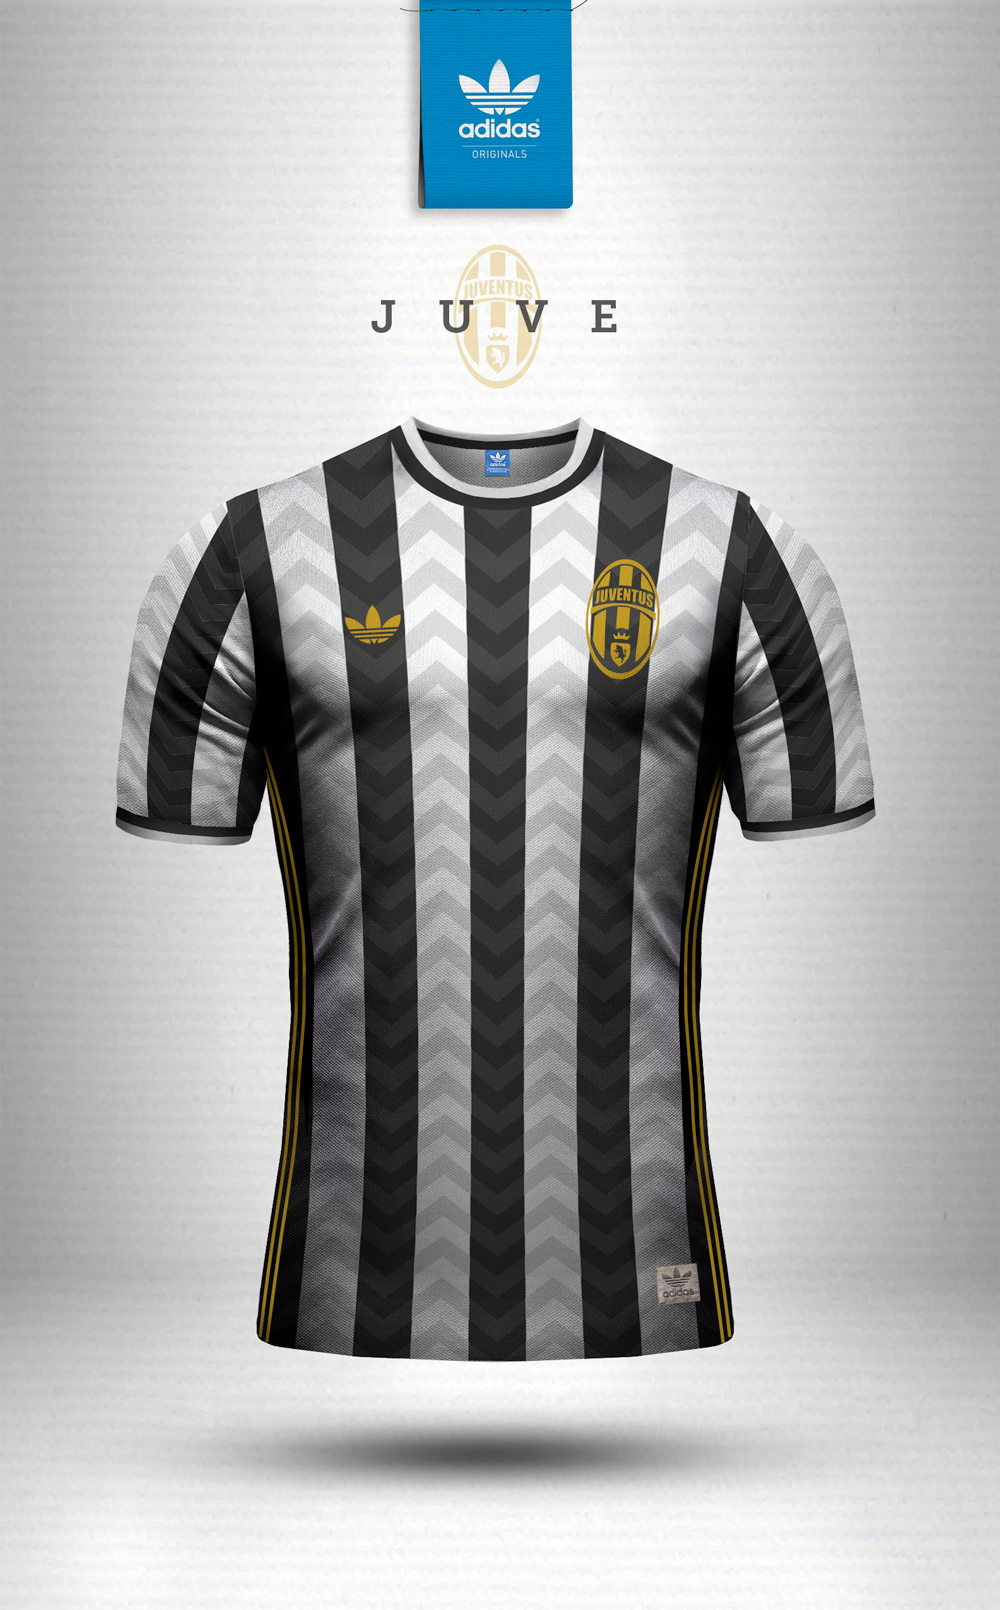 60eb6664506 Adidas Originals and Nike Sportswear jersey design concepts using geometric  patterns.